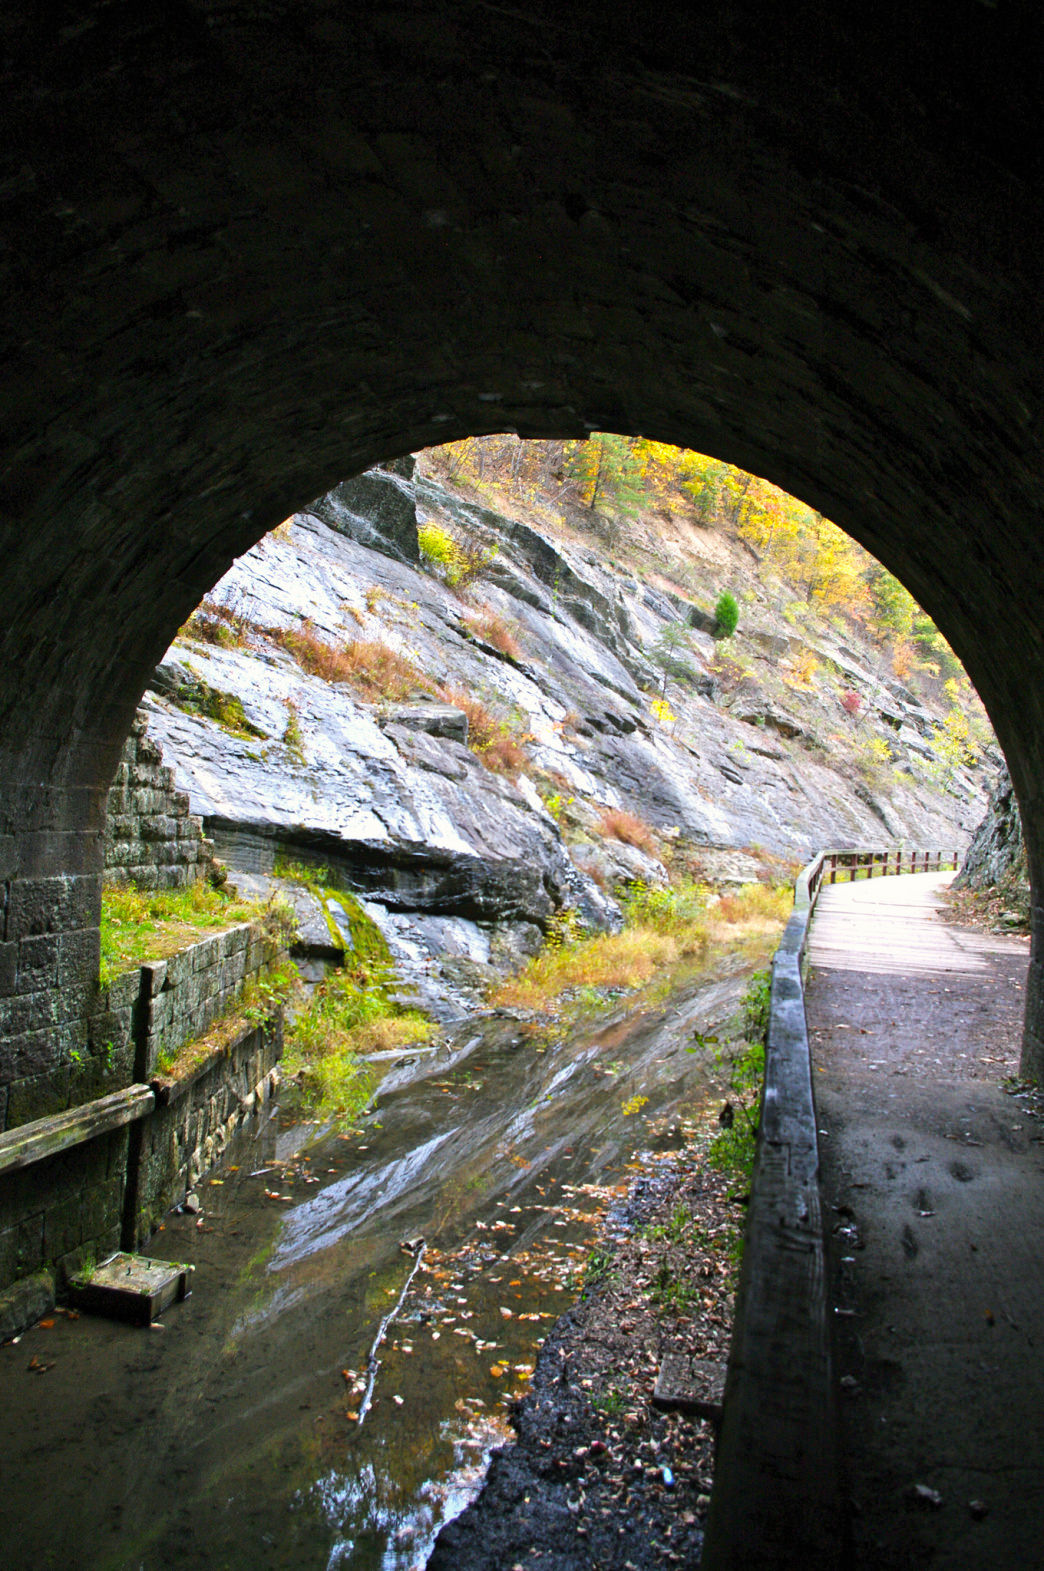 The Paw Paw Tunnel is over 3,000 feet long! You'll want a headlamp for this one.